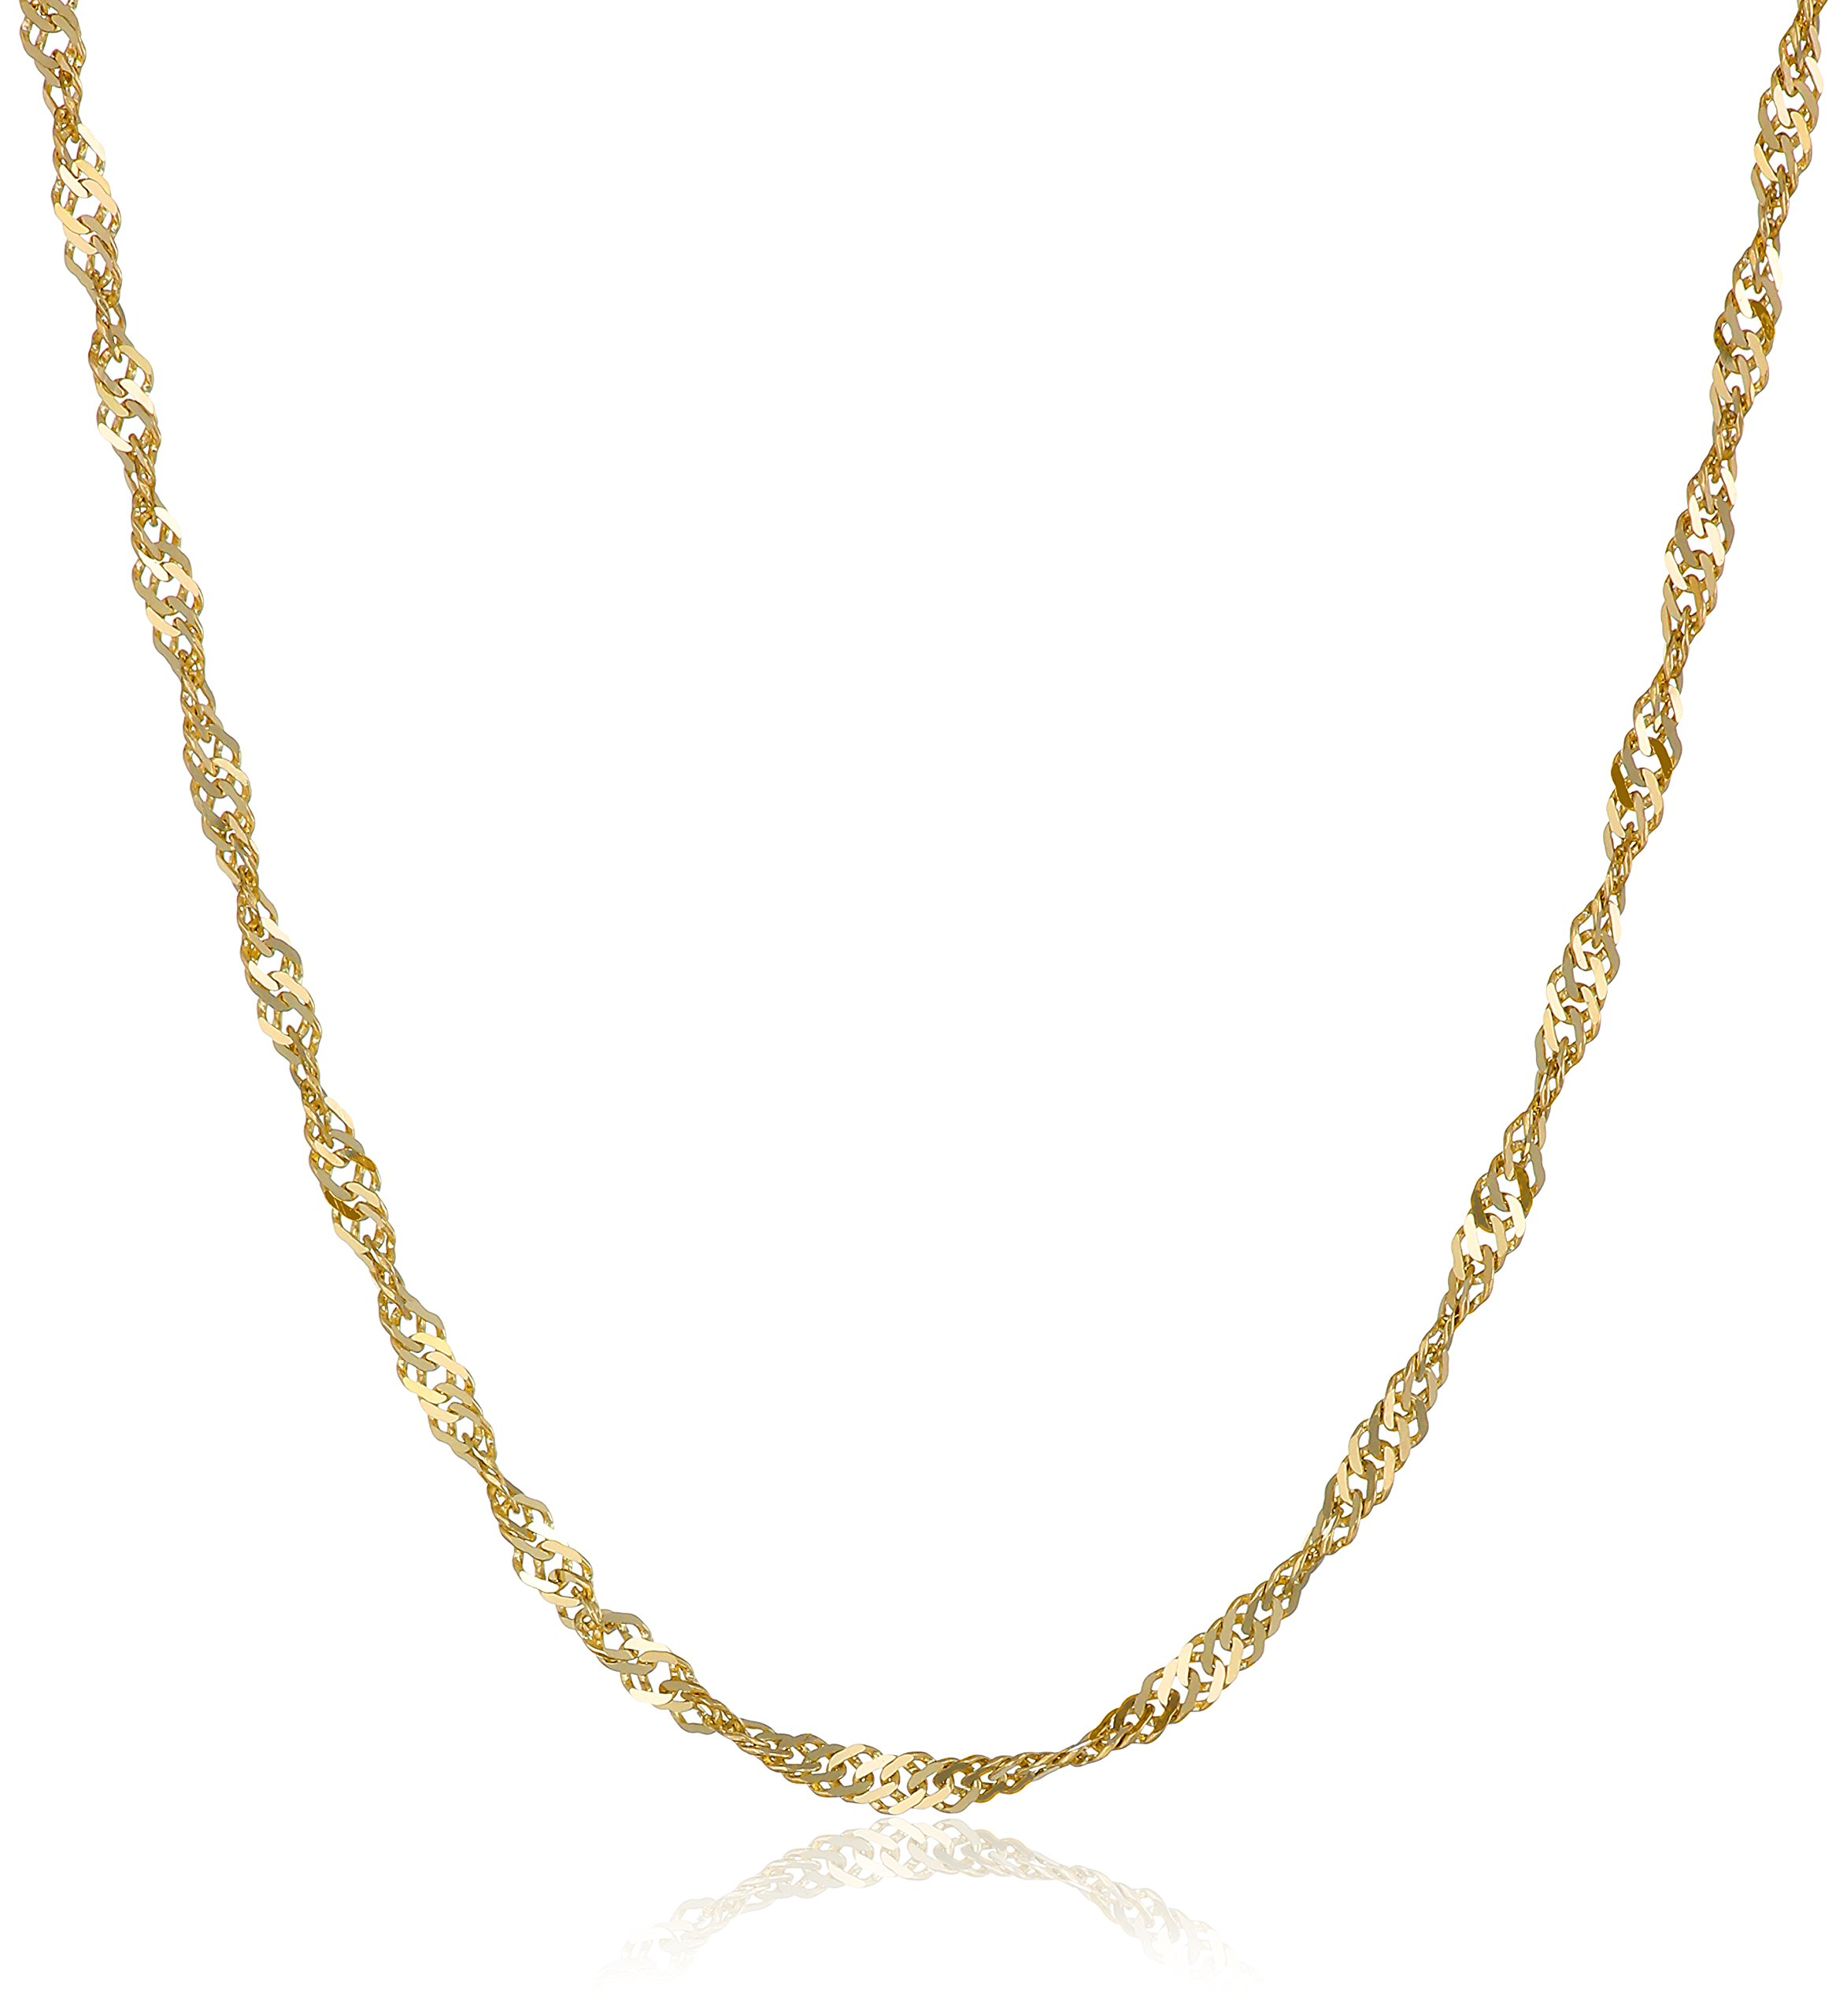 10k Yellow Gold 1.35mm Solid Singapore Chain Necklace, 18''